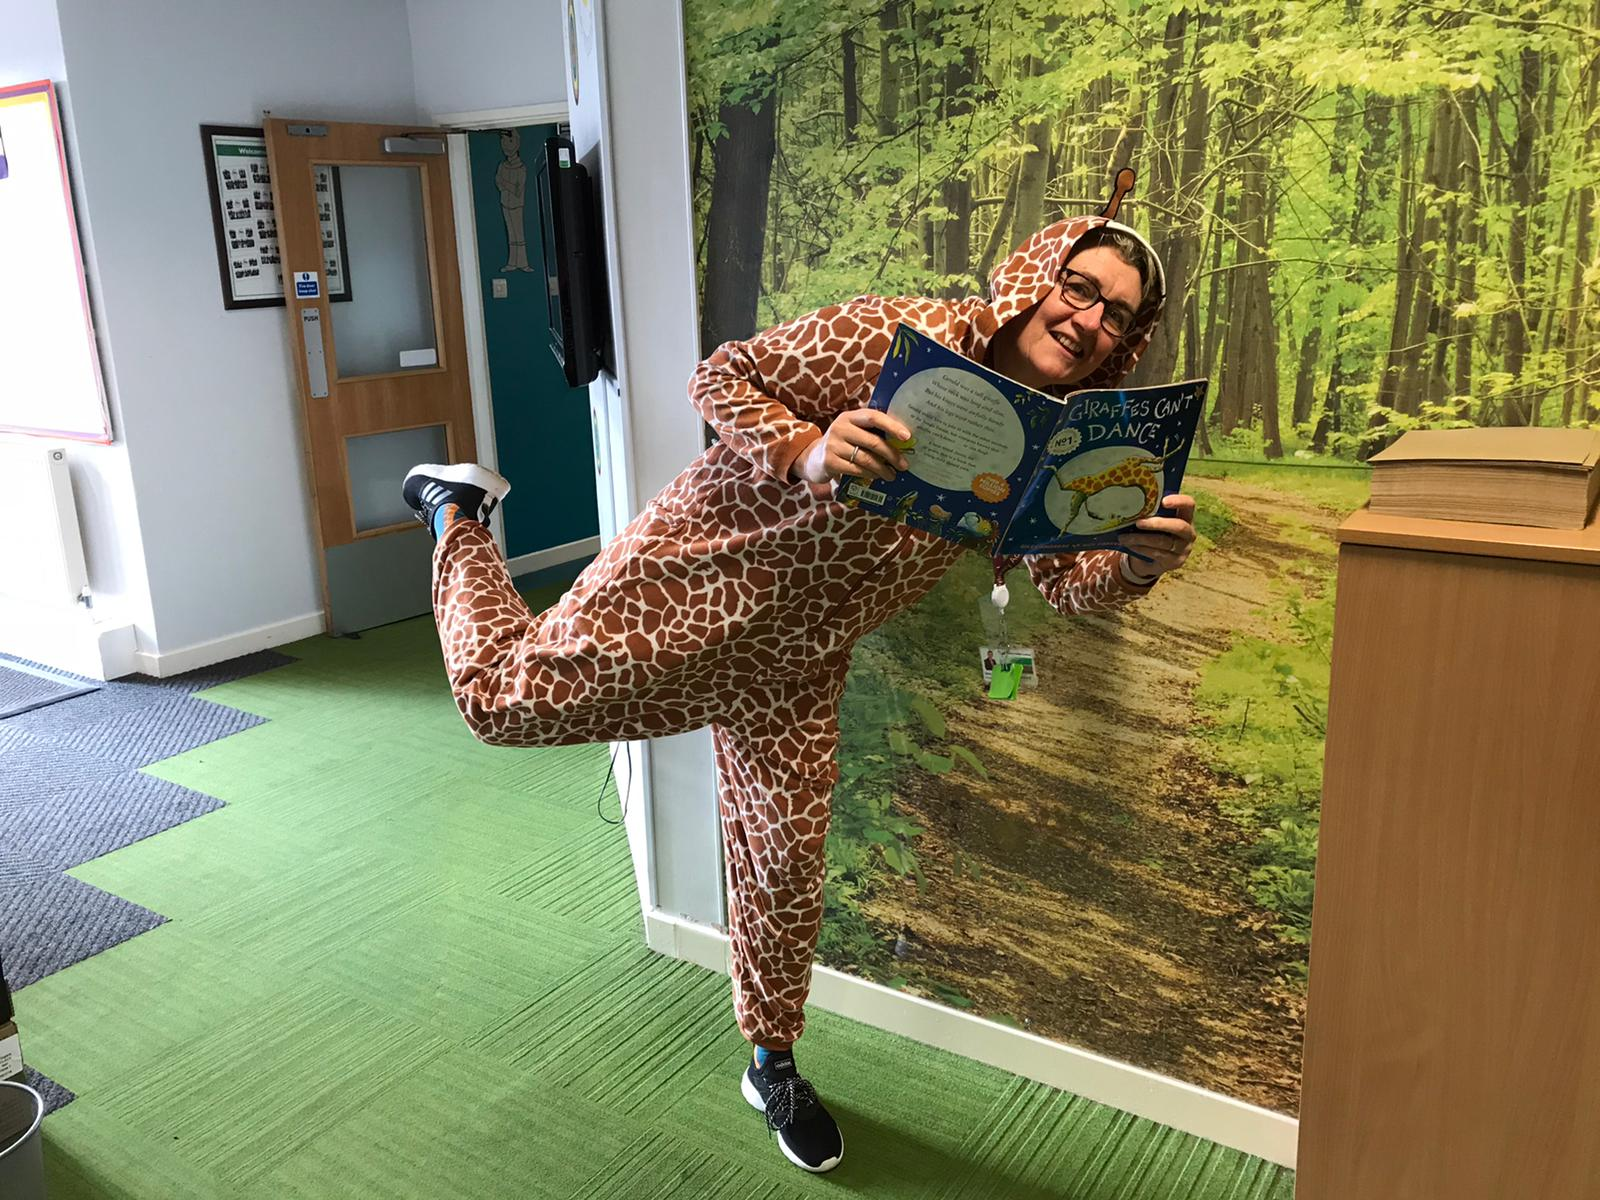 World Book Day - Thursday 4th March